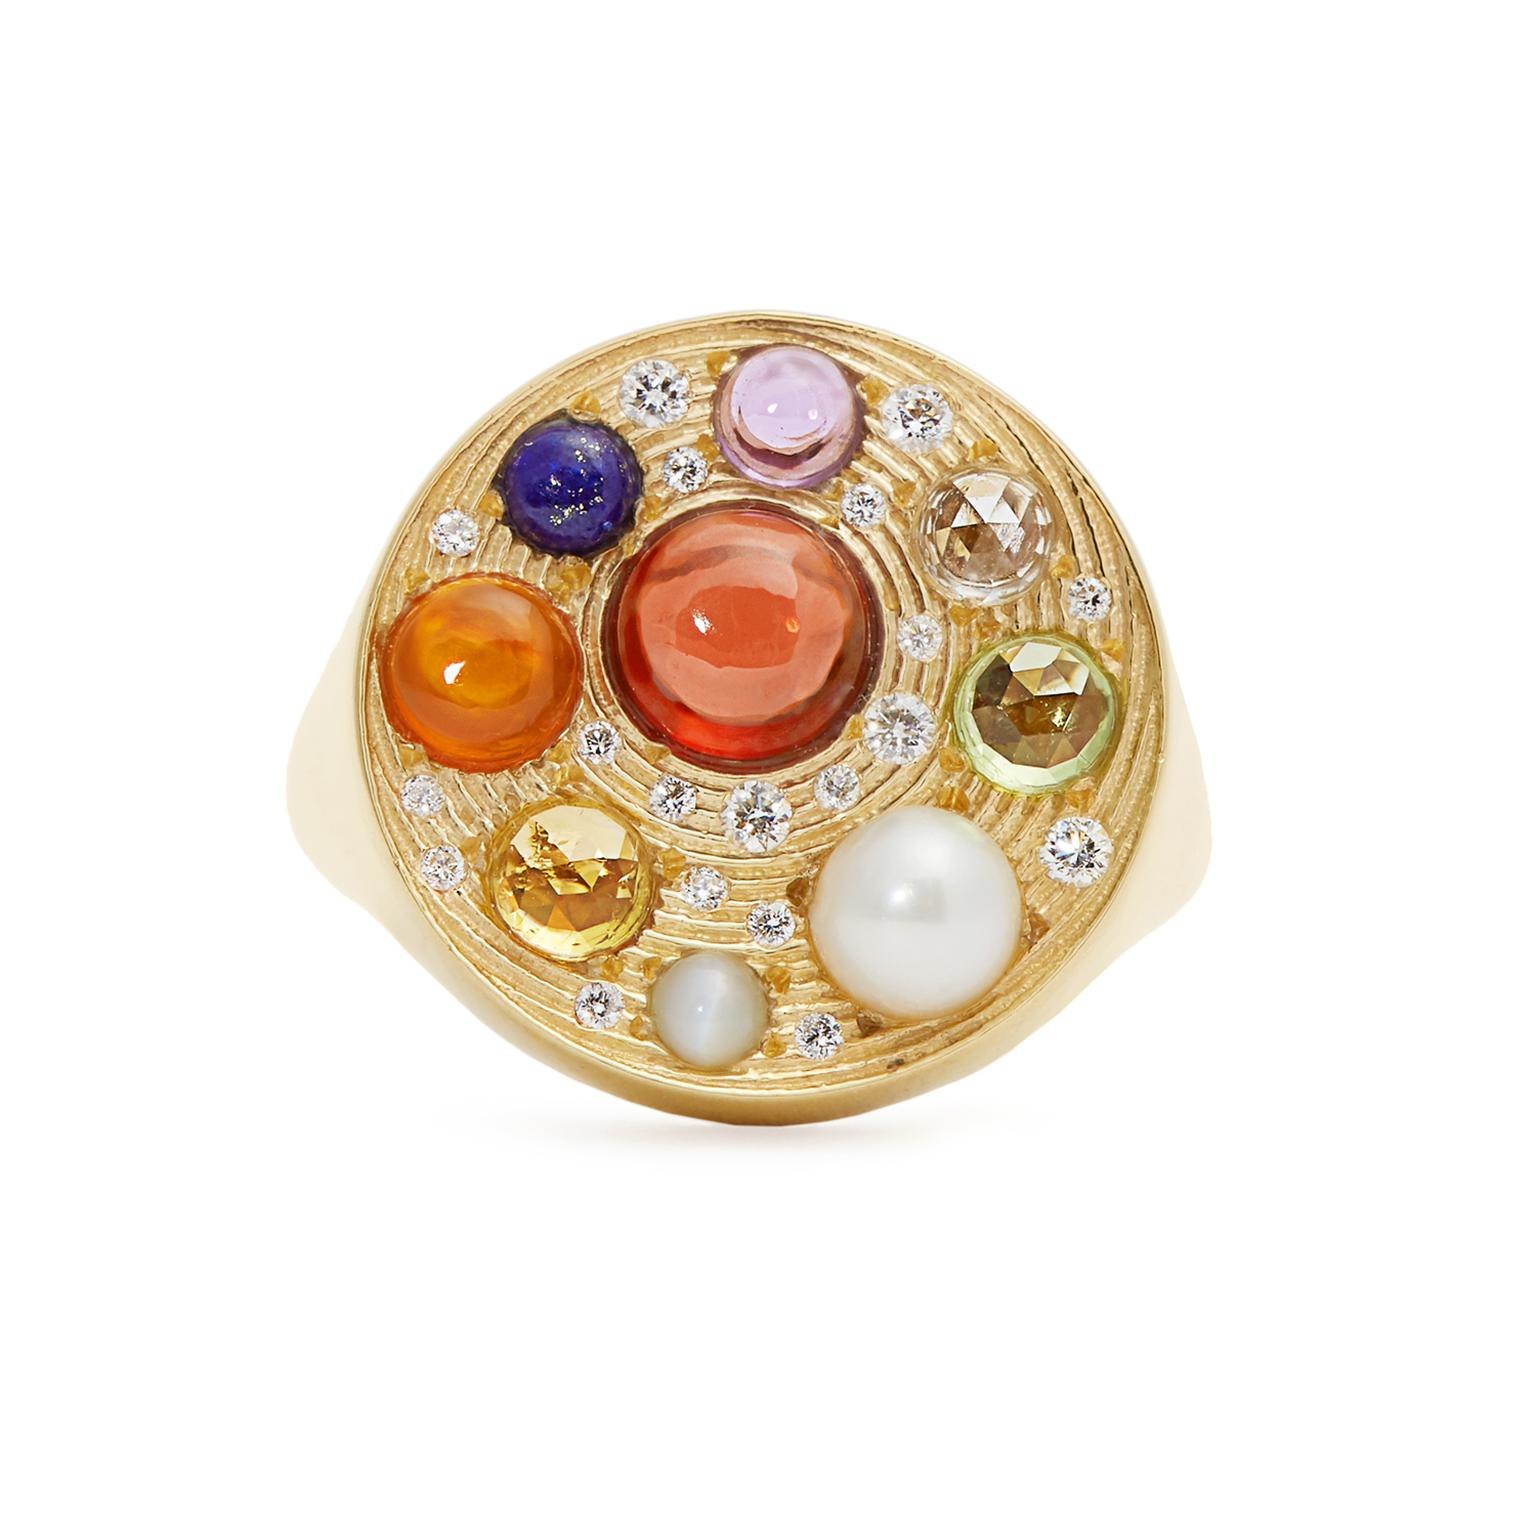 Noor Fares gold and gemstone signet ring